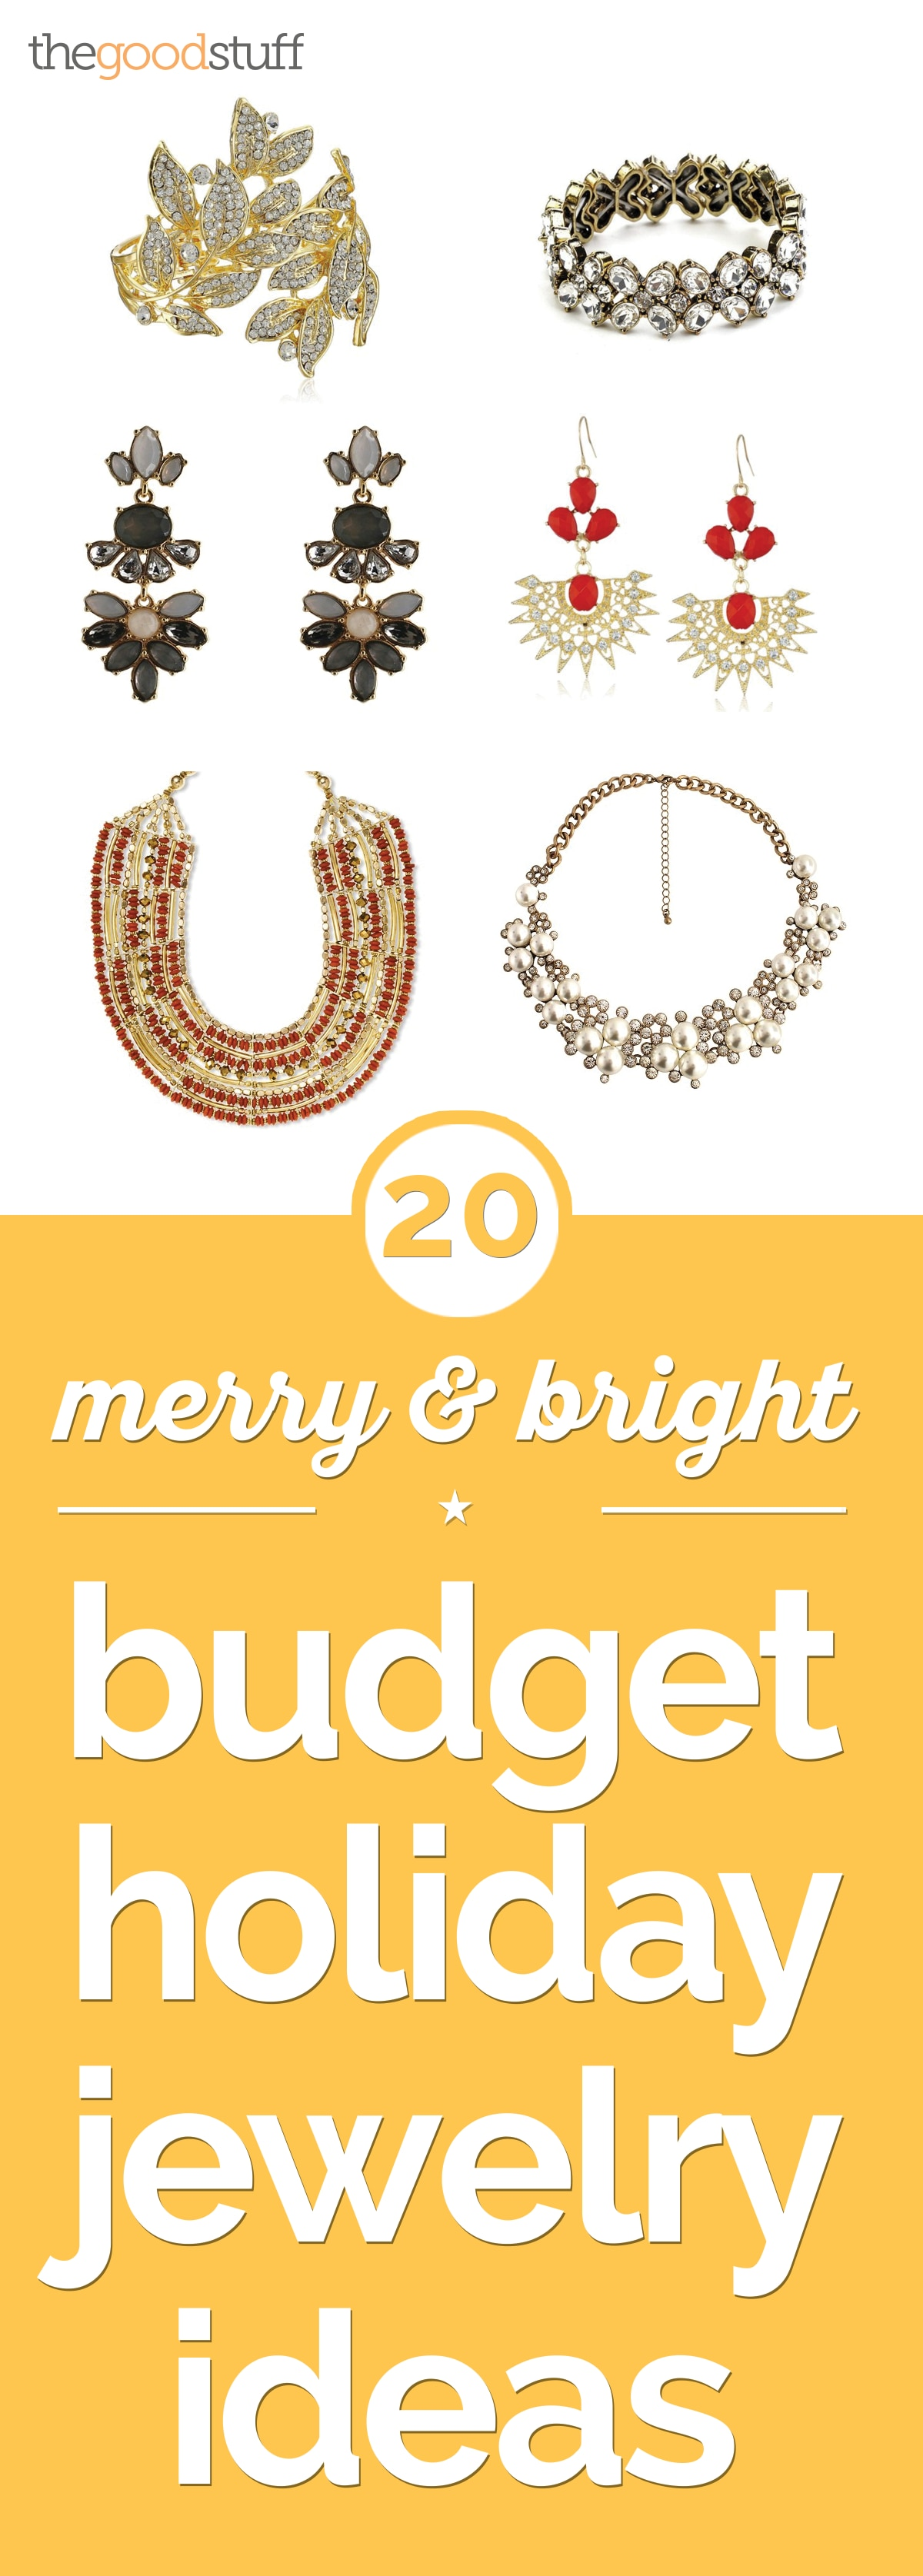 20 Merry & Bright Budget Holiday Jewelry Ideas | thegoodstuff